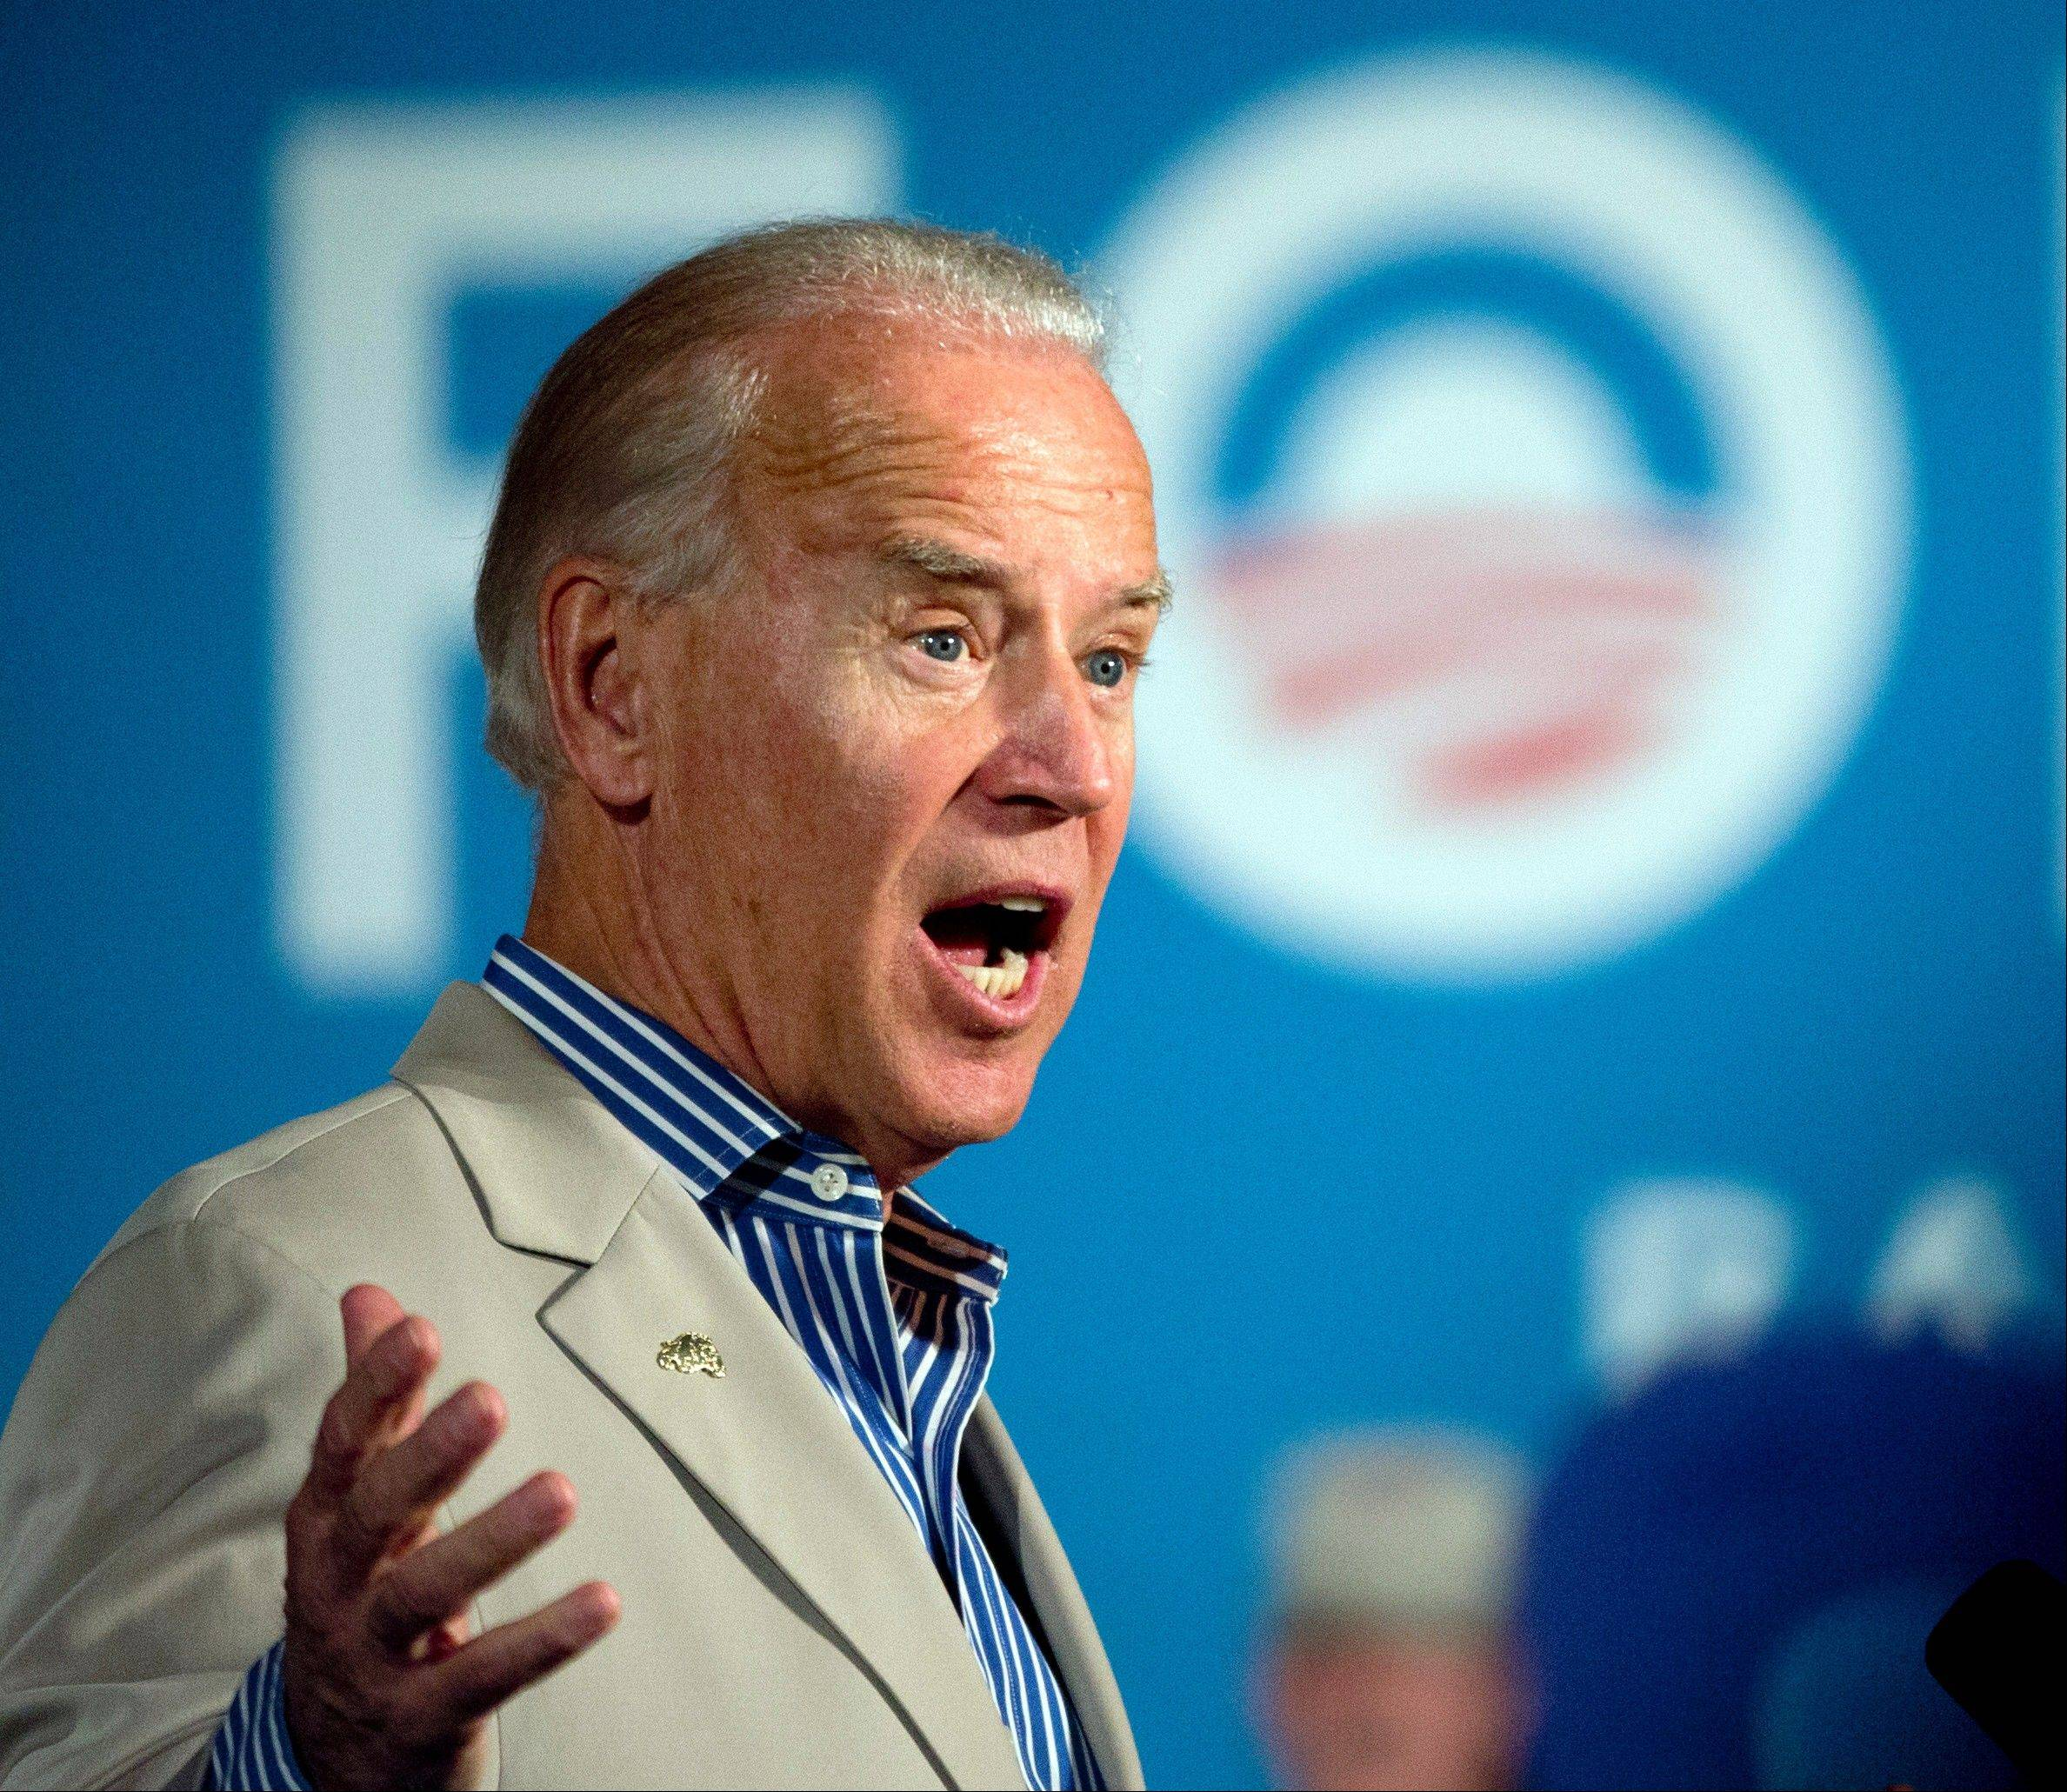 Vice President Joe Biden speaks during a campaign event at West York Area High School, Sunday, in York, Pa.